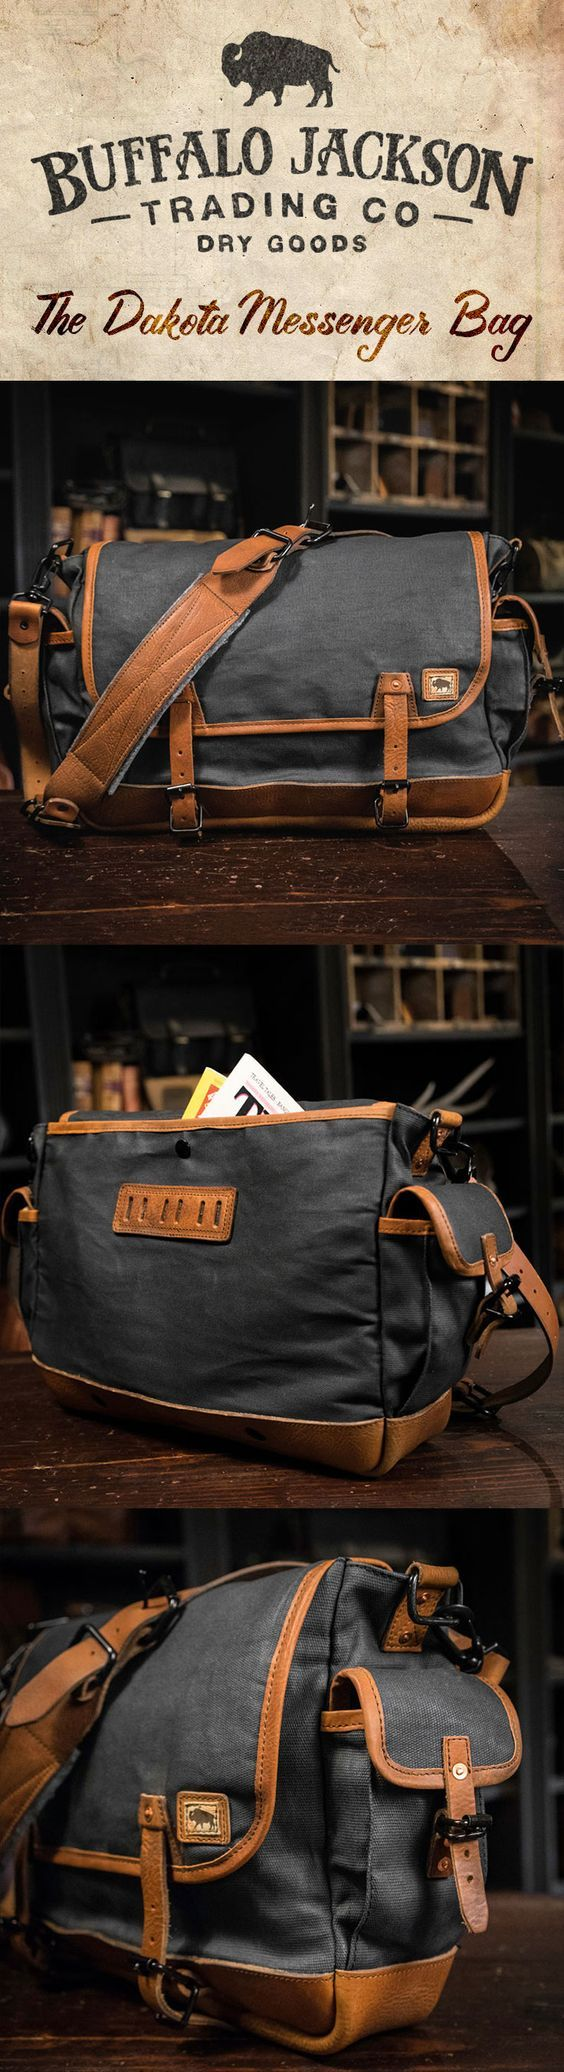 This traditional sized vintage military messenger bag is crafted from waxed canvas with leather accents, perfect for your laptop, meeting materials, and your copy of Harrison & Kooser's Braided Creek (to read during your meeting). mens bags | vintage satchel bags